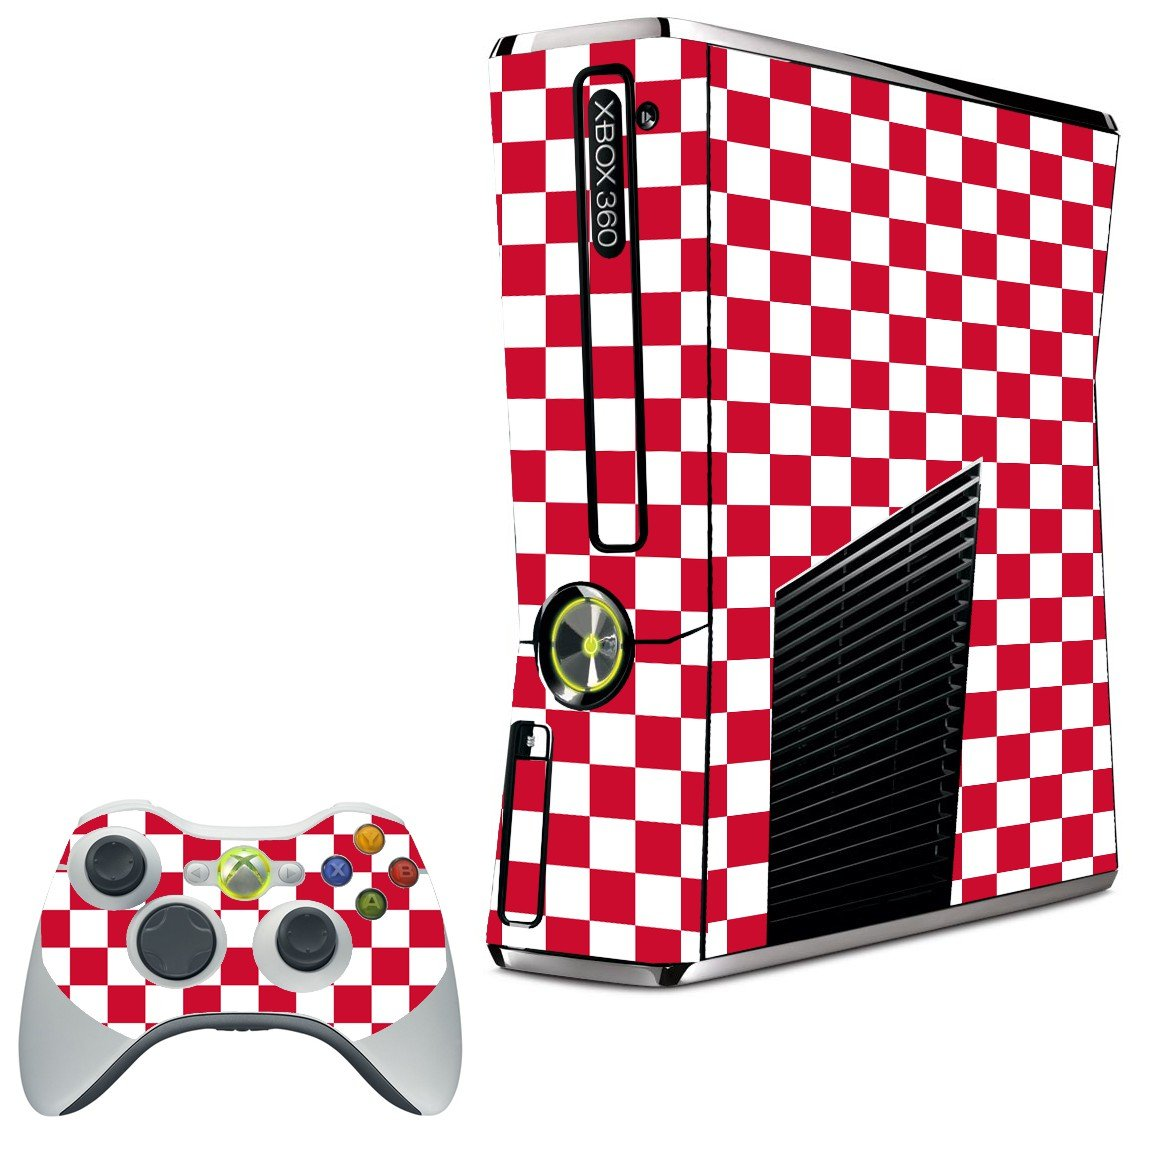 RED CHECKERED XBOX 360 SLIM GAME CONSOLE SKIN